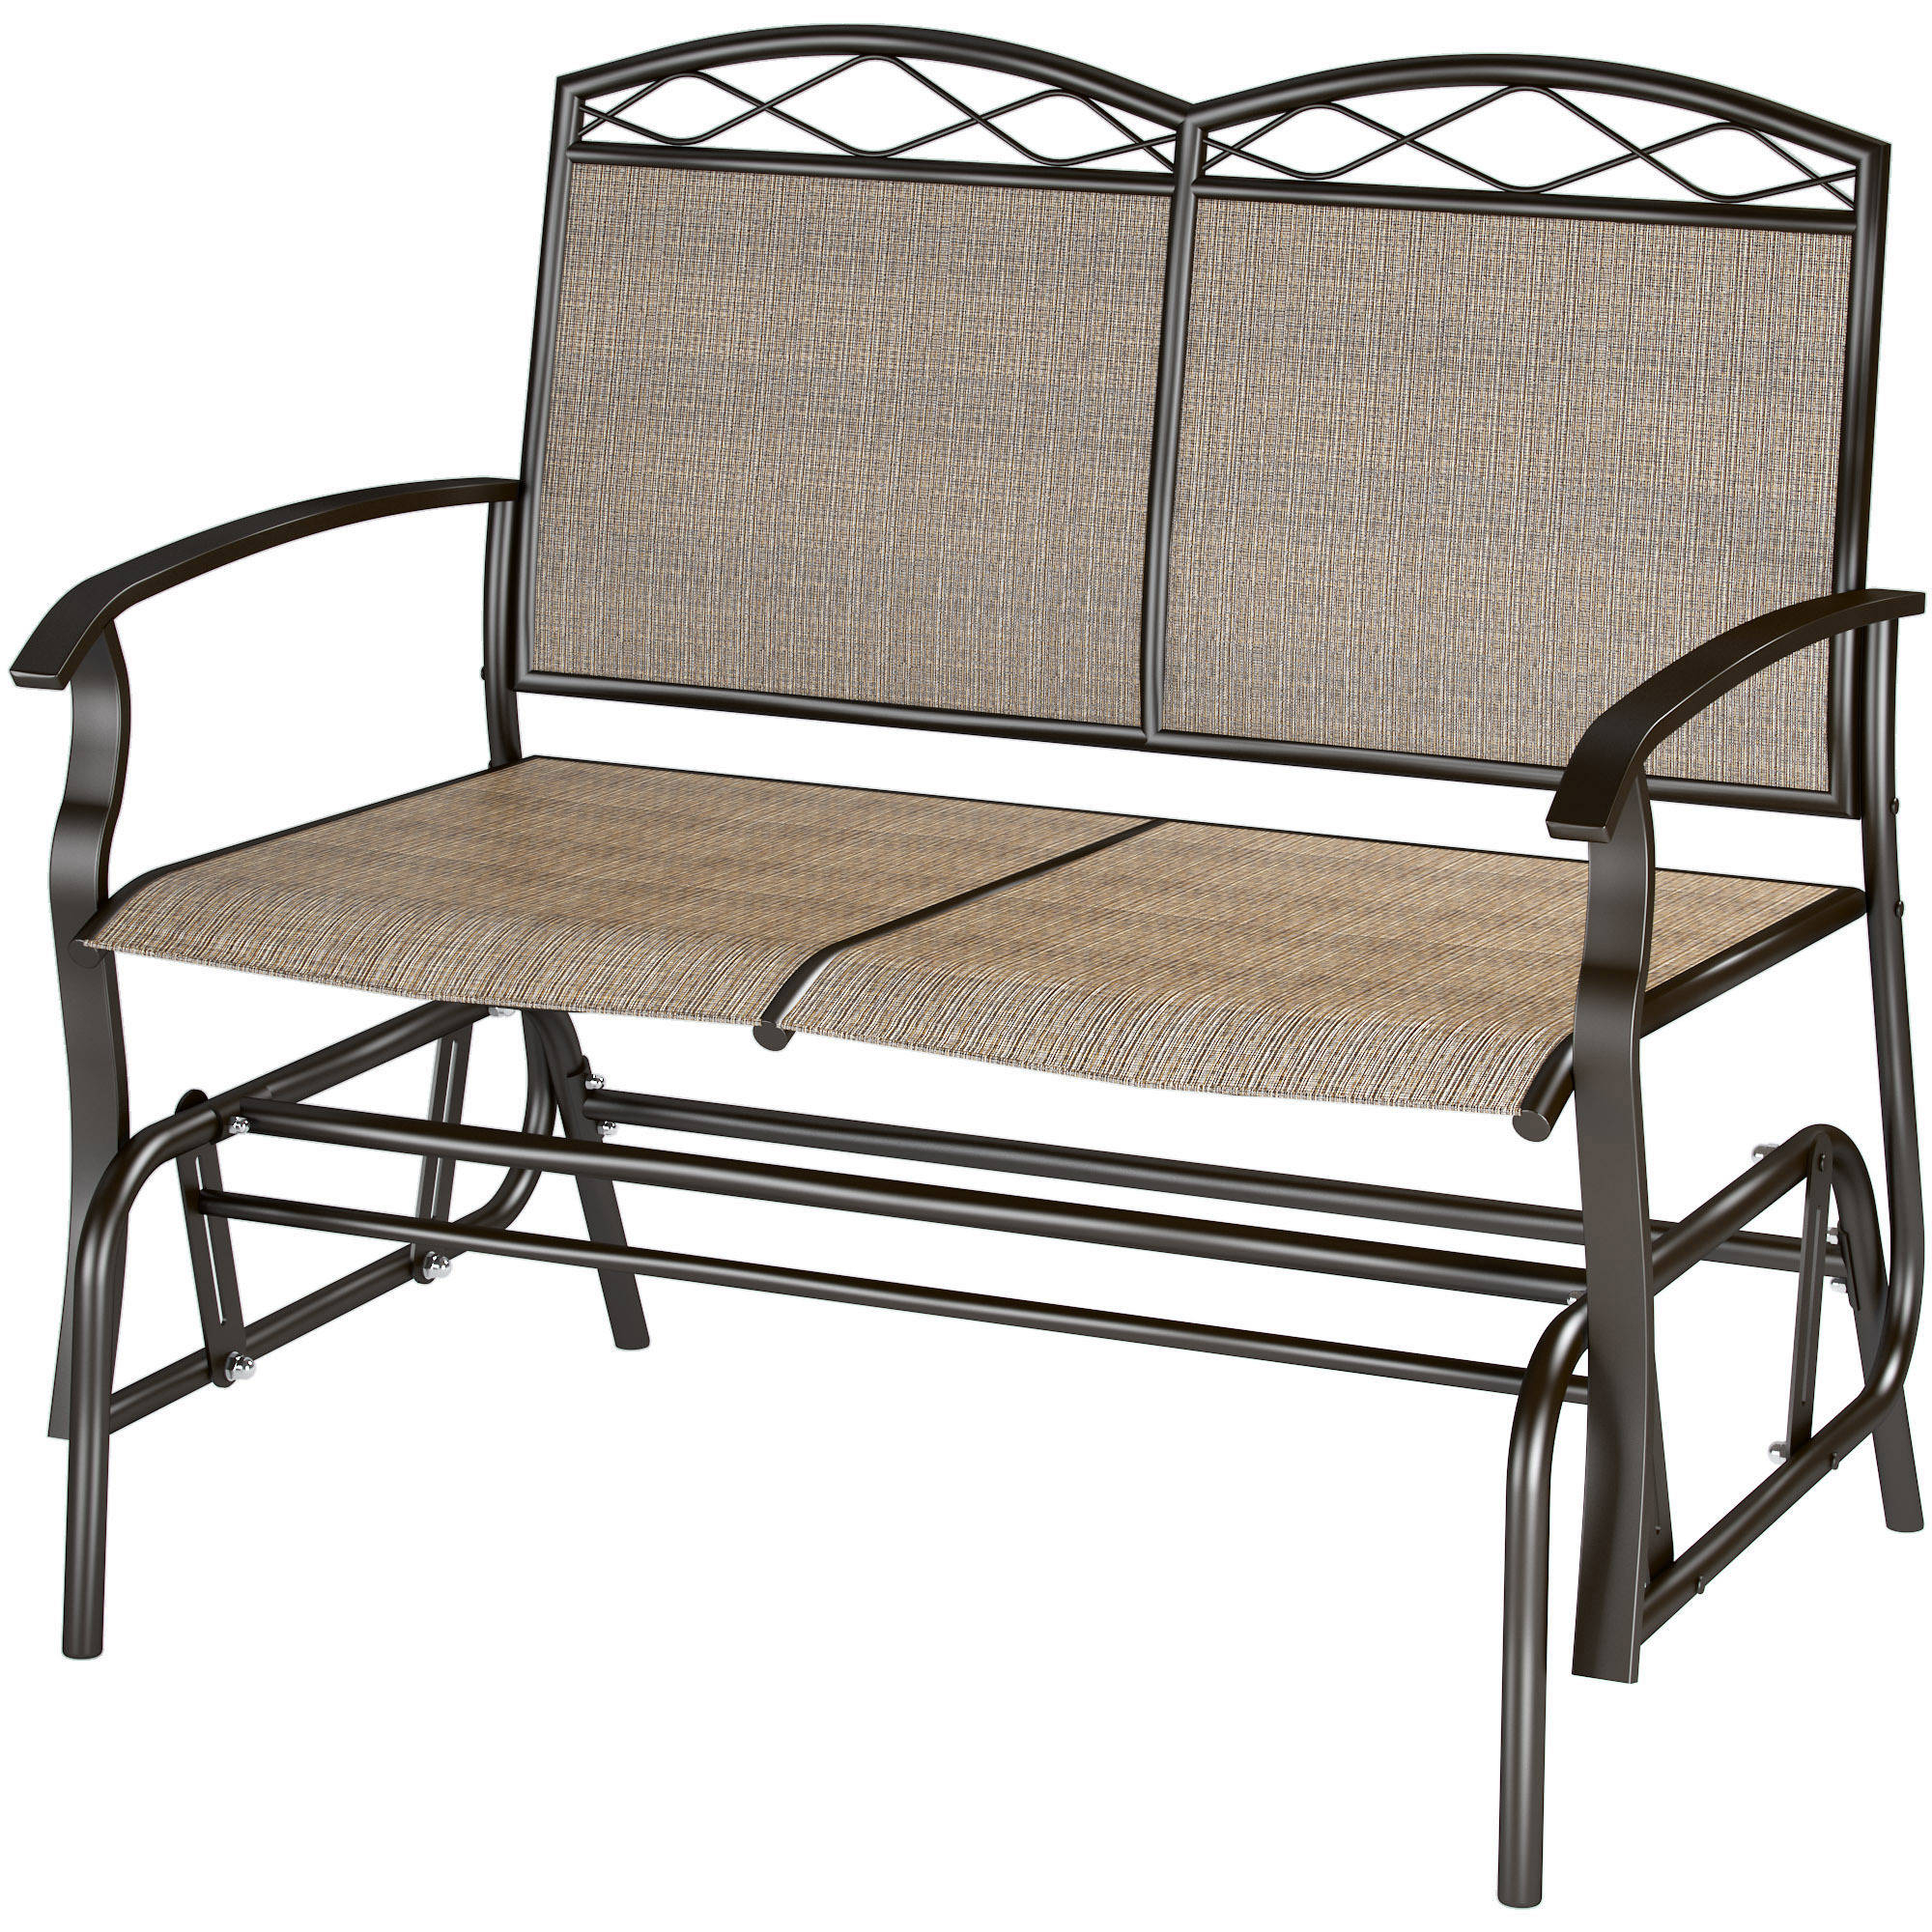 Most Popular Metal Powder Coat Double Seat Glider Benches With Regard To Corliving Speckled Brown Patio Double Glider – Walmart (View 24 of 30)